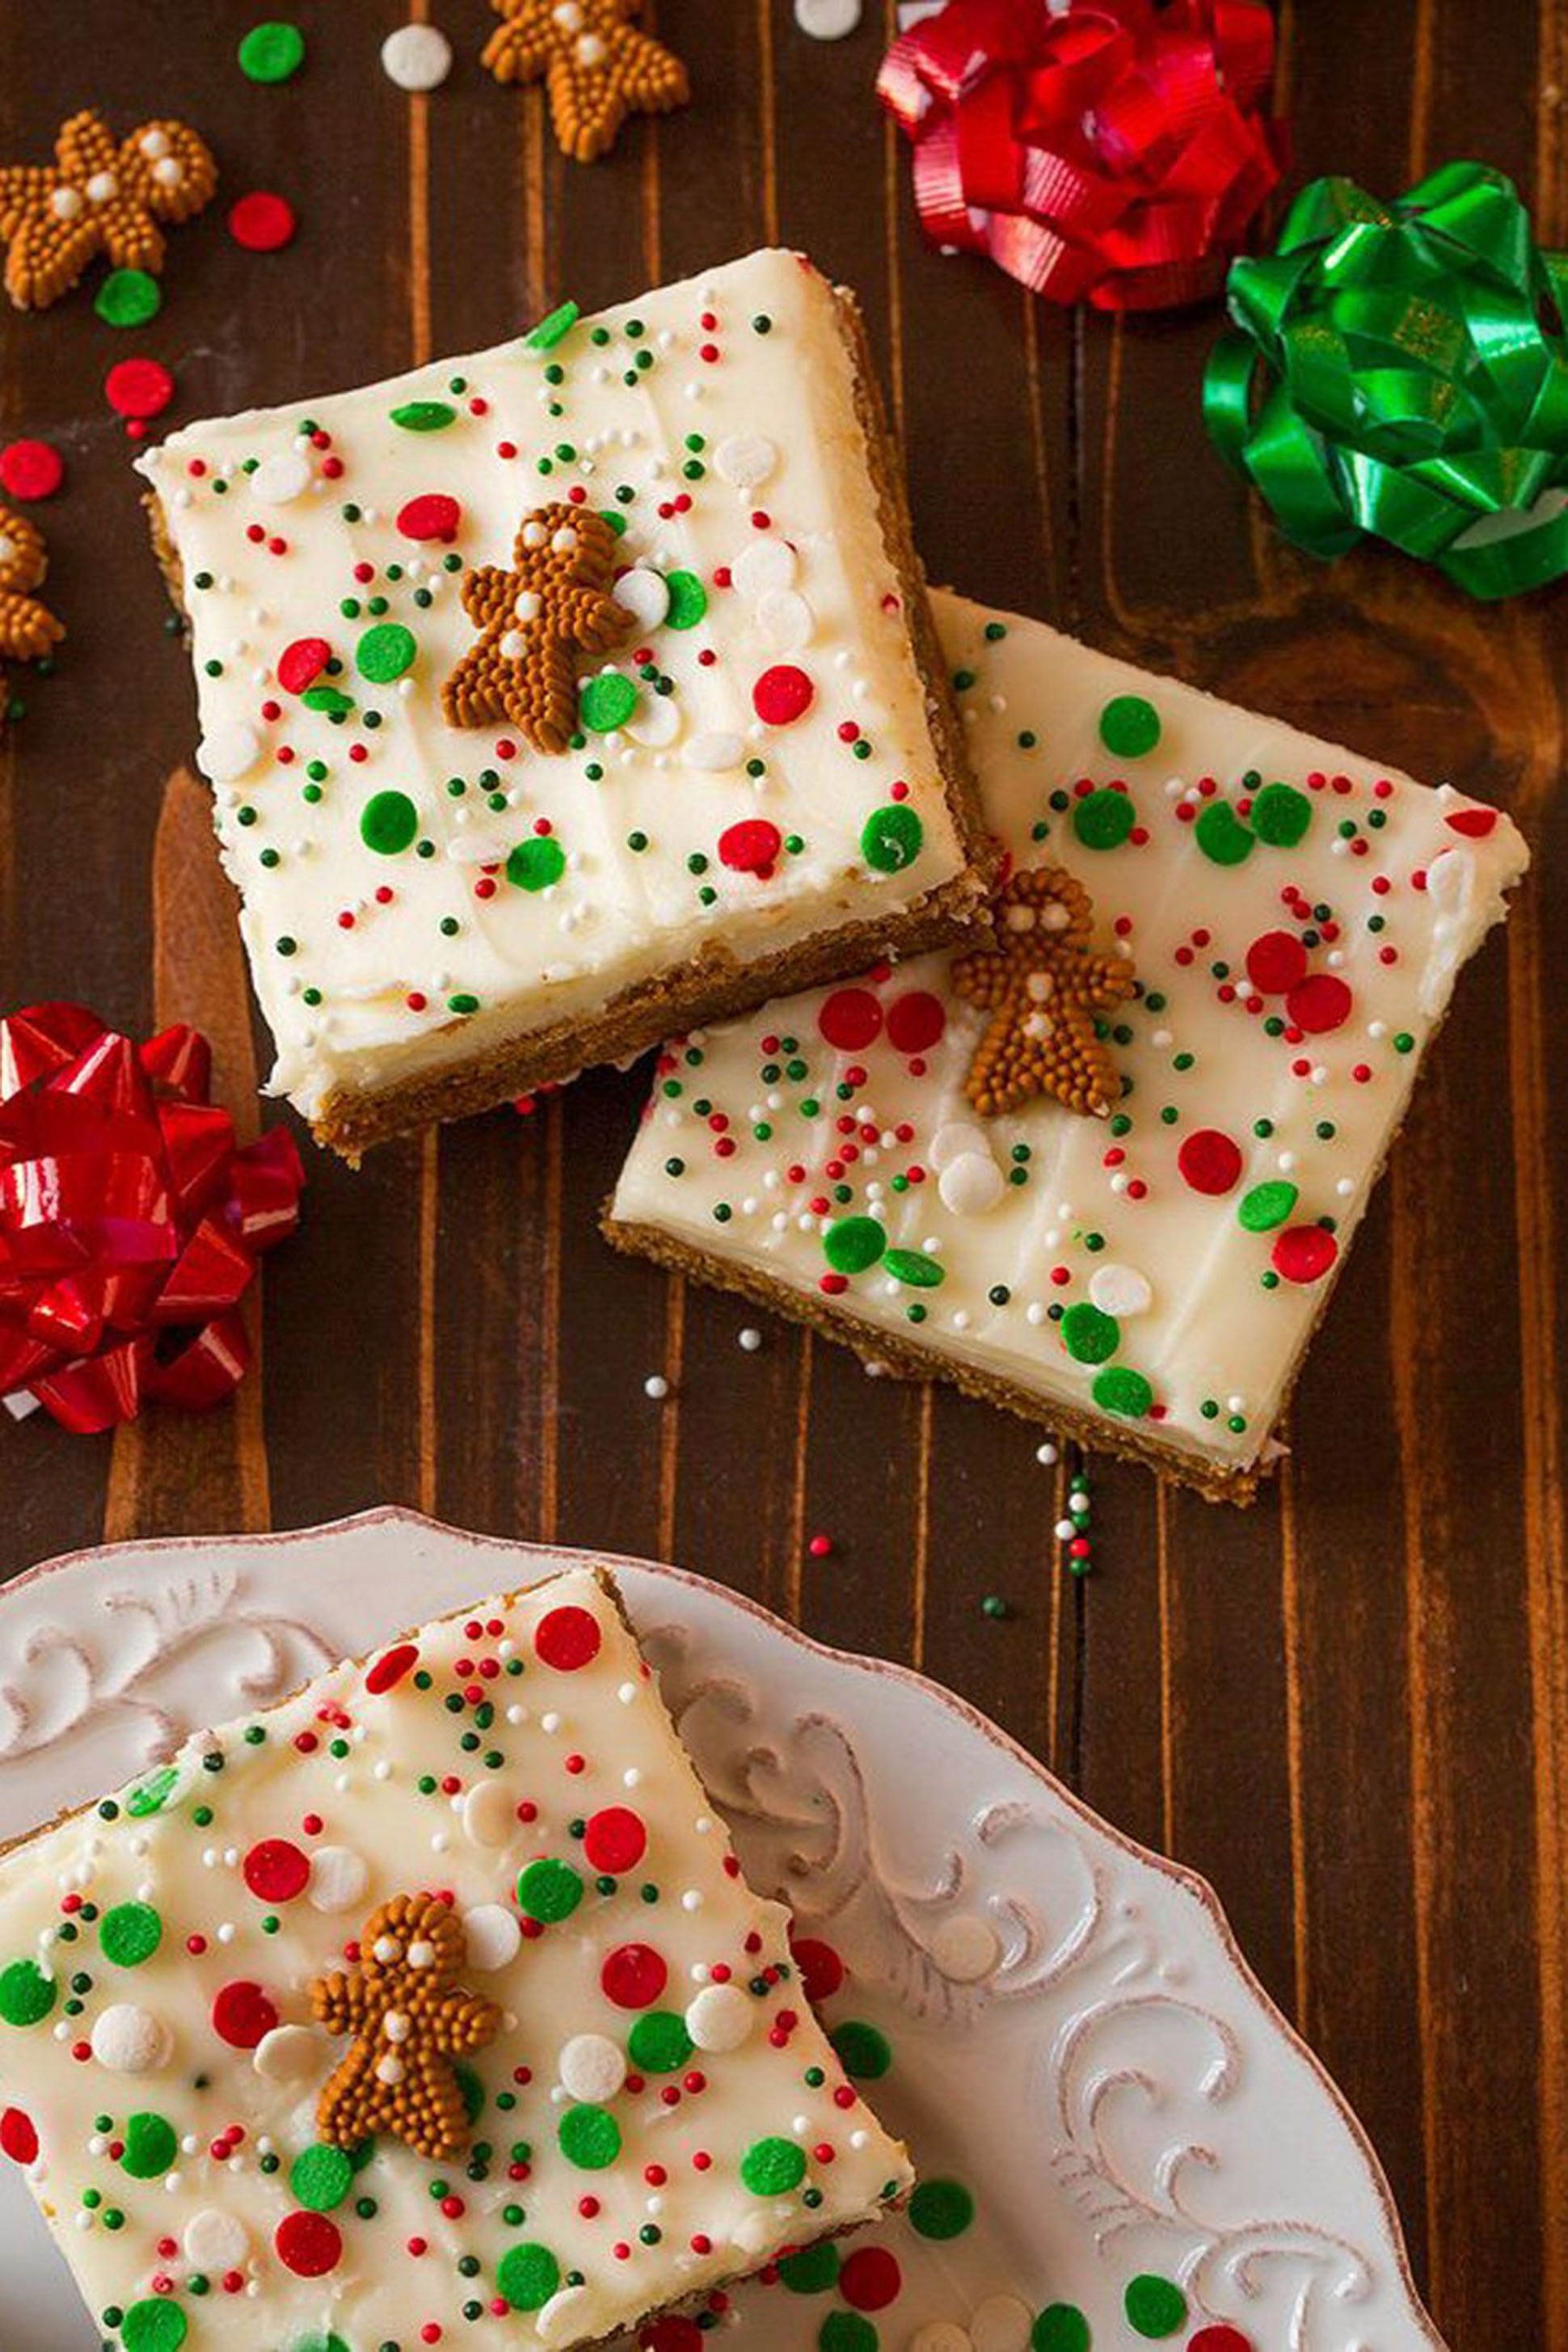 12 Fun Family Christmas Party Ideas – Holiday Party Food And …